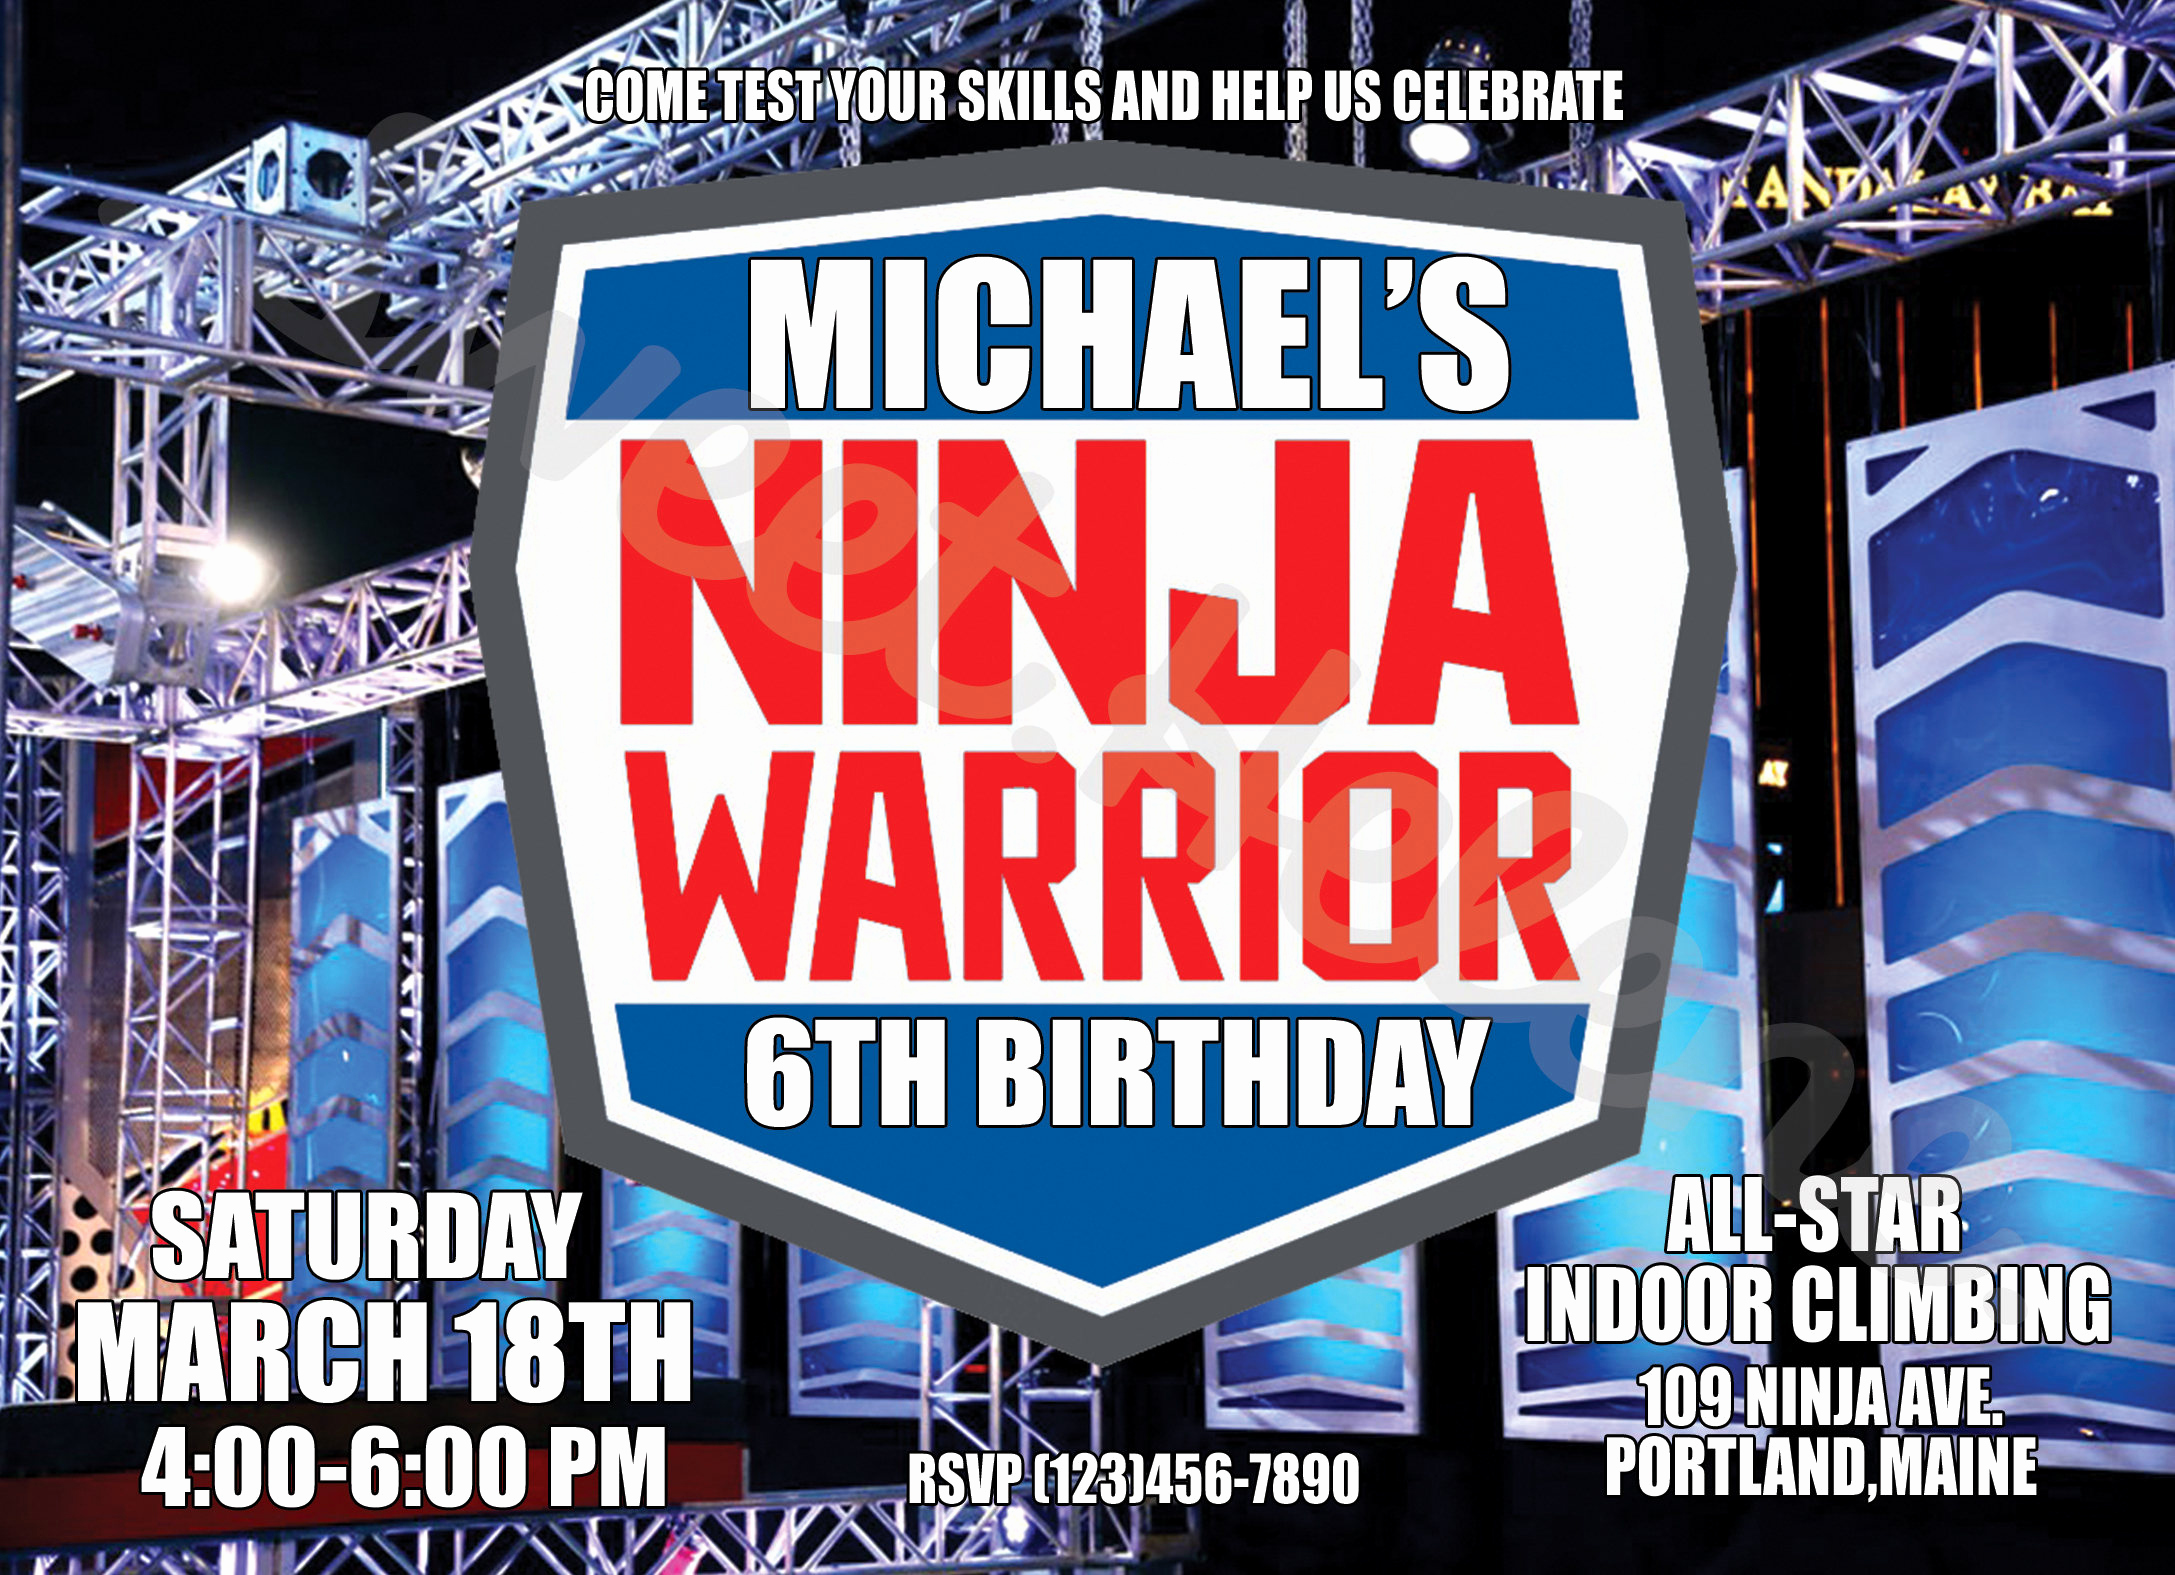 American Ninja Warrior Invitation Beautiful American Ninja Warrior Invitation Ninja Warrior Birthday